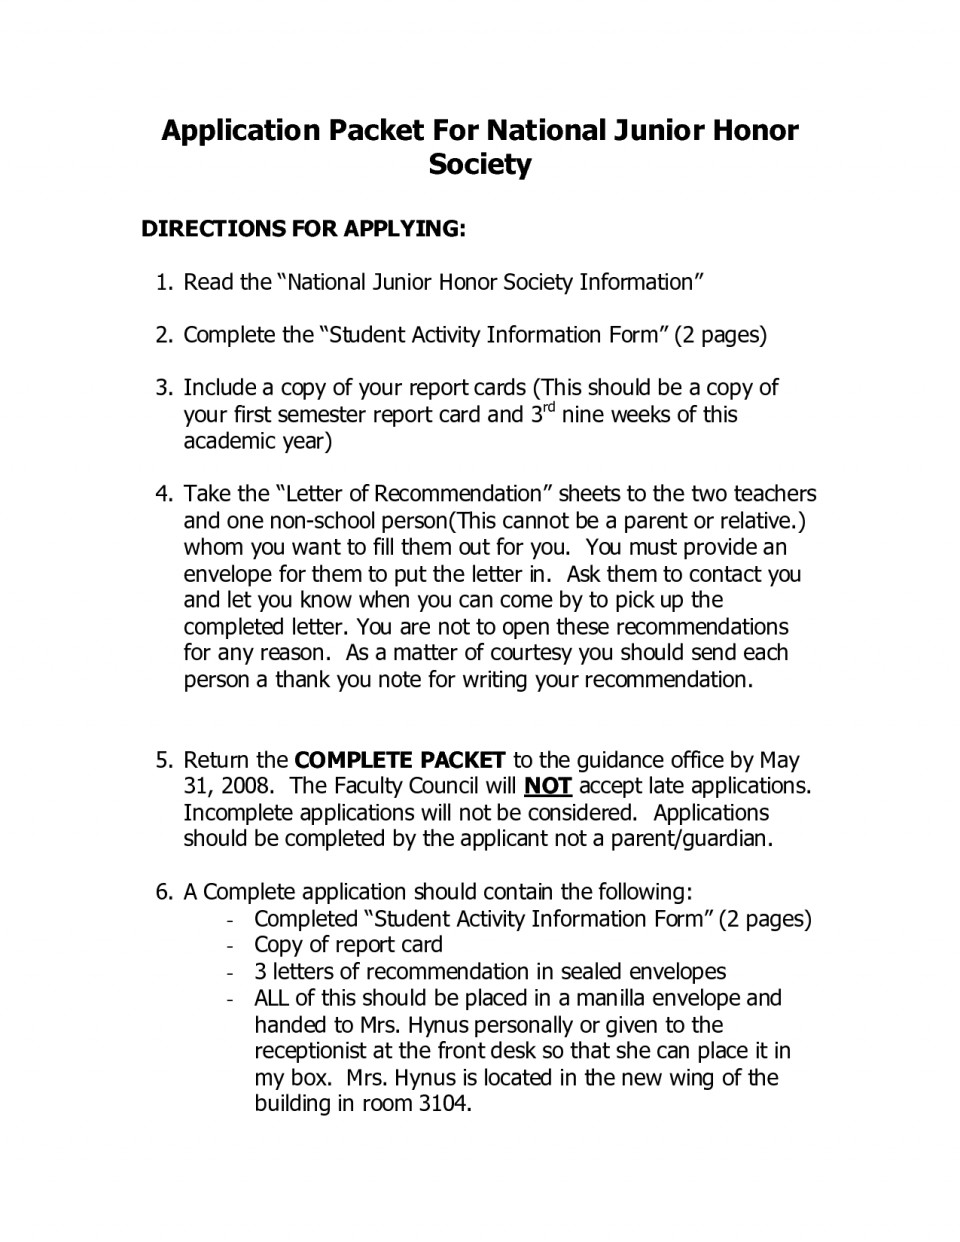 003 Application Essay National Junior Honor Society Conclusion Of To Example Unique Njhs 960